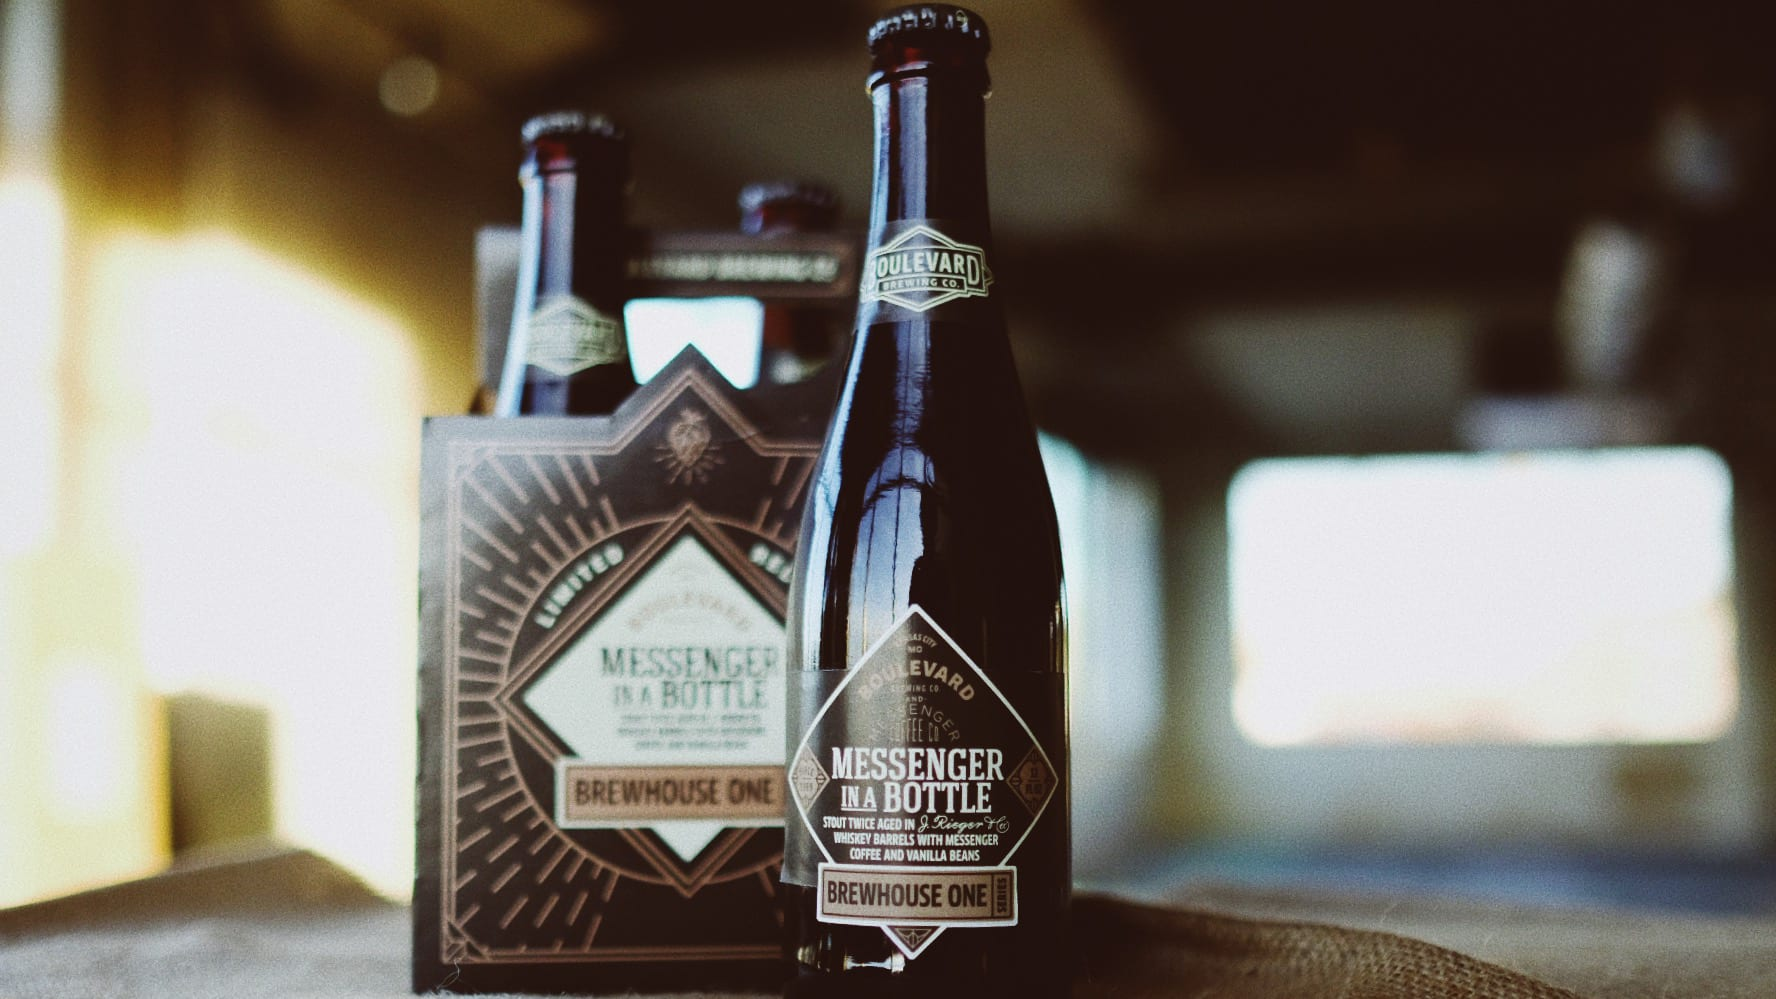 Boulevard Brewing Co. releases Messenger in a Bottle